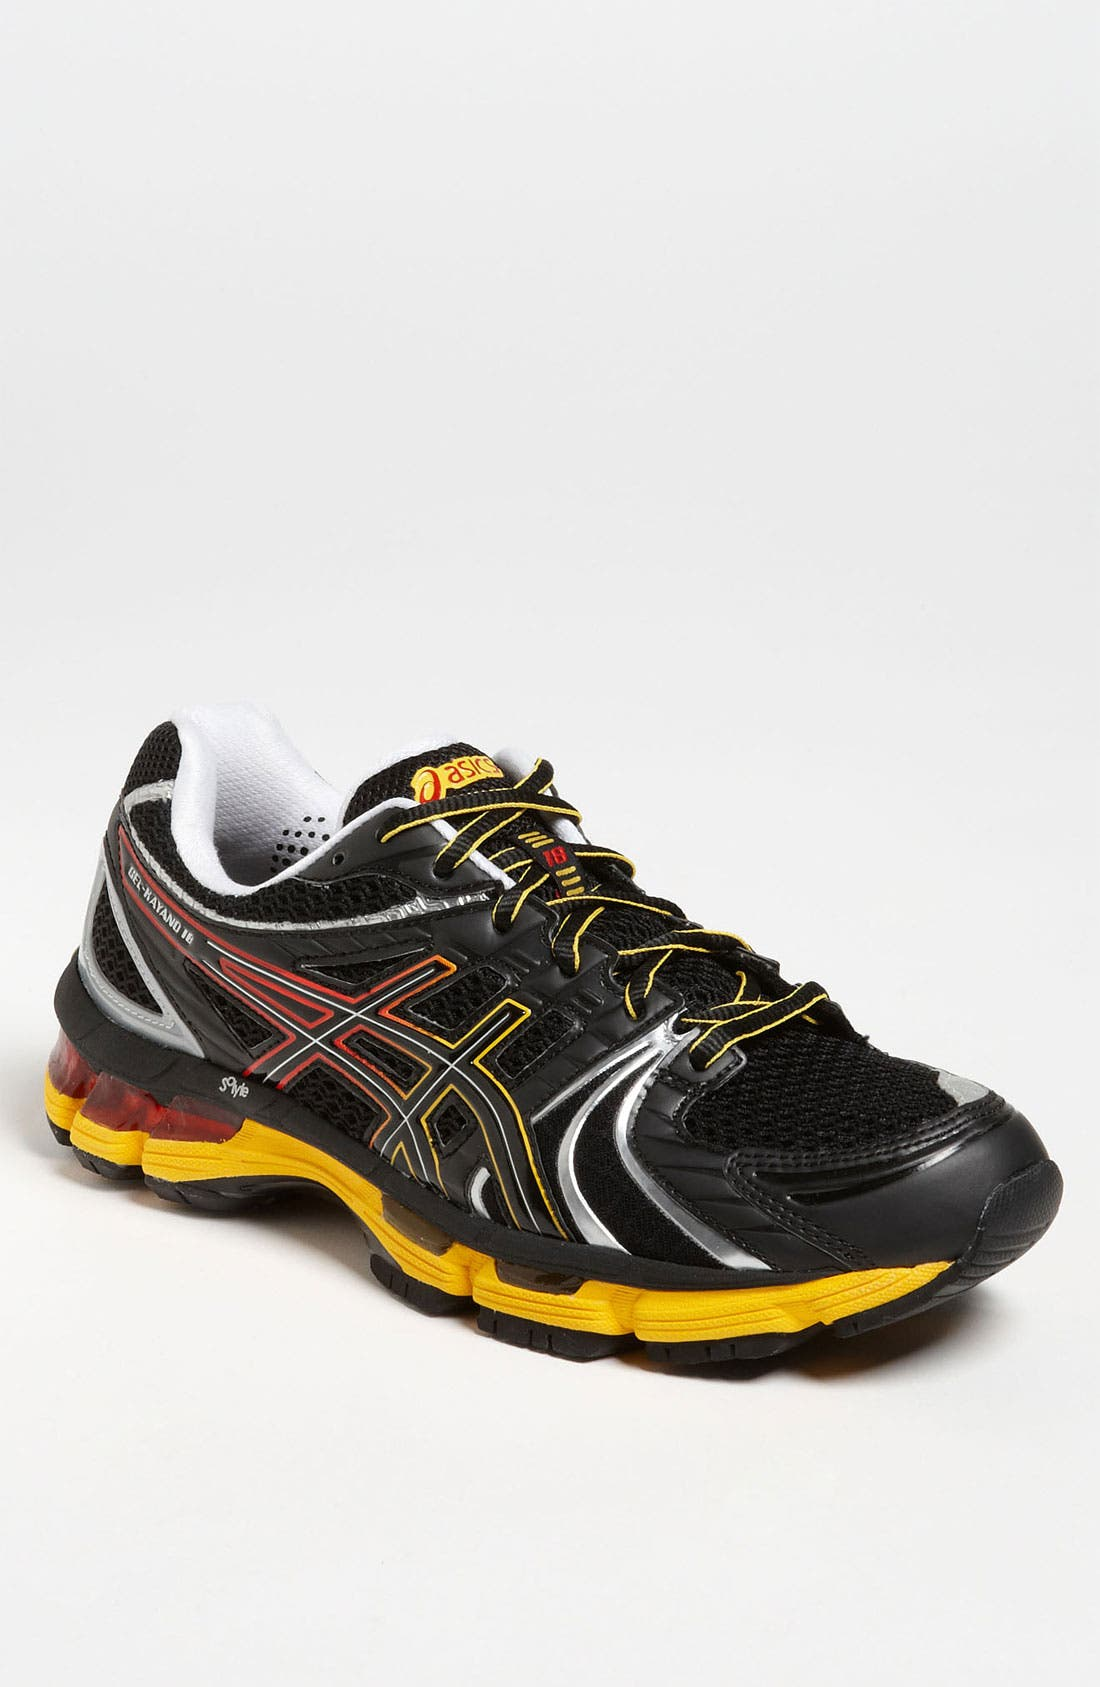 Alternate Image 1 Selected - ASICS® 'GEL-Kayano® 18' Running Shoe (Men)